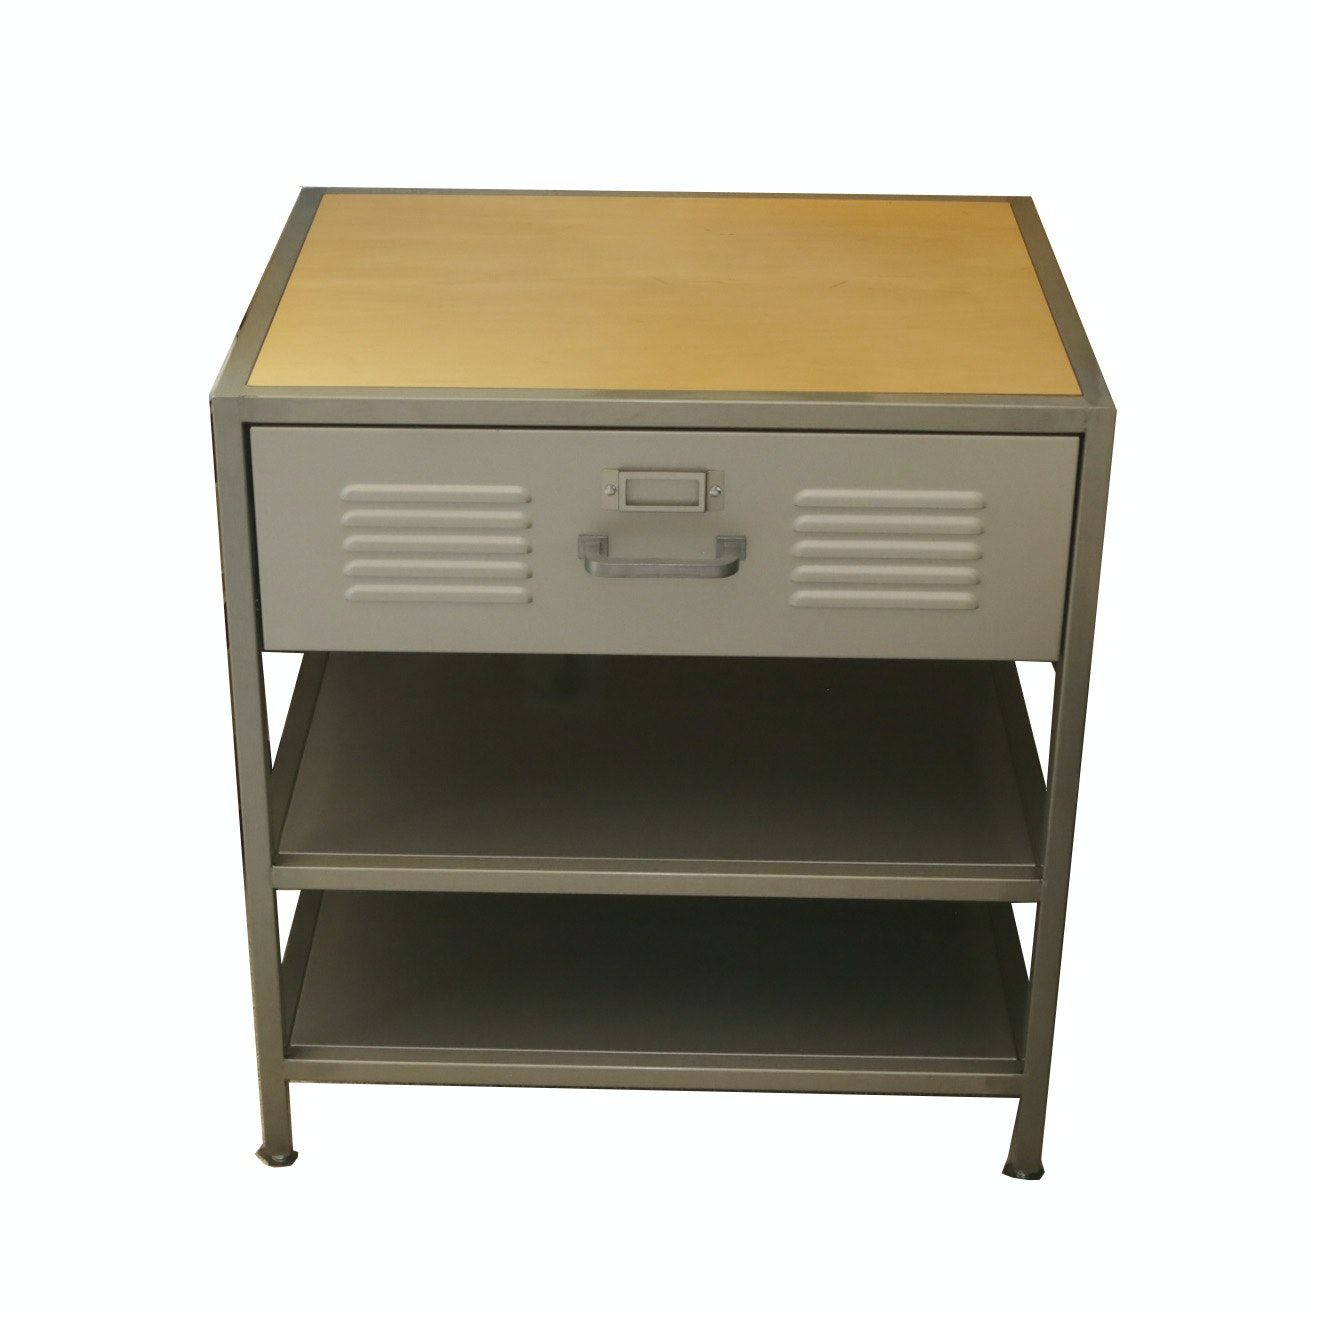 locker style nightstand with drawer and shelves : ebth Locker Style Nightstand